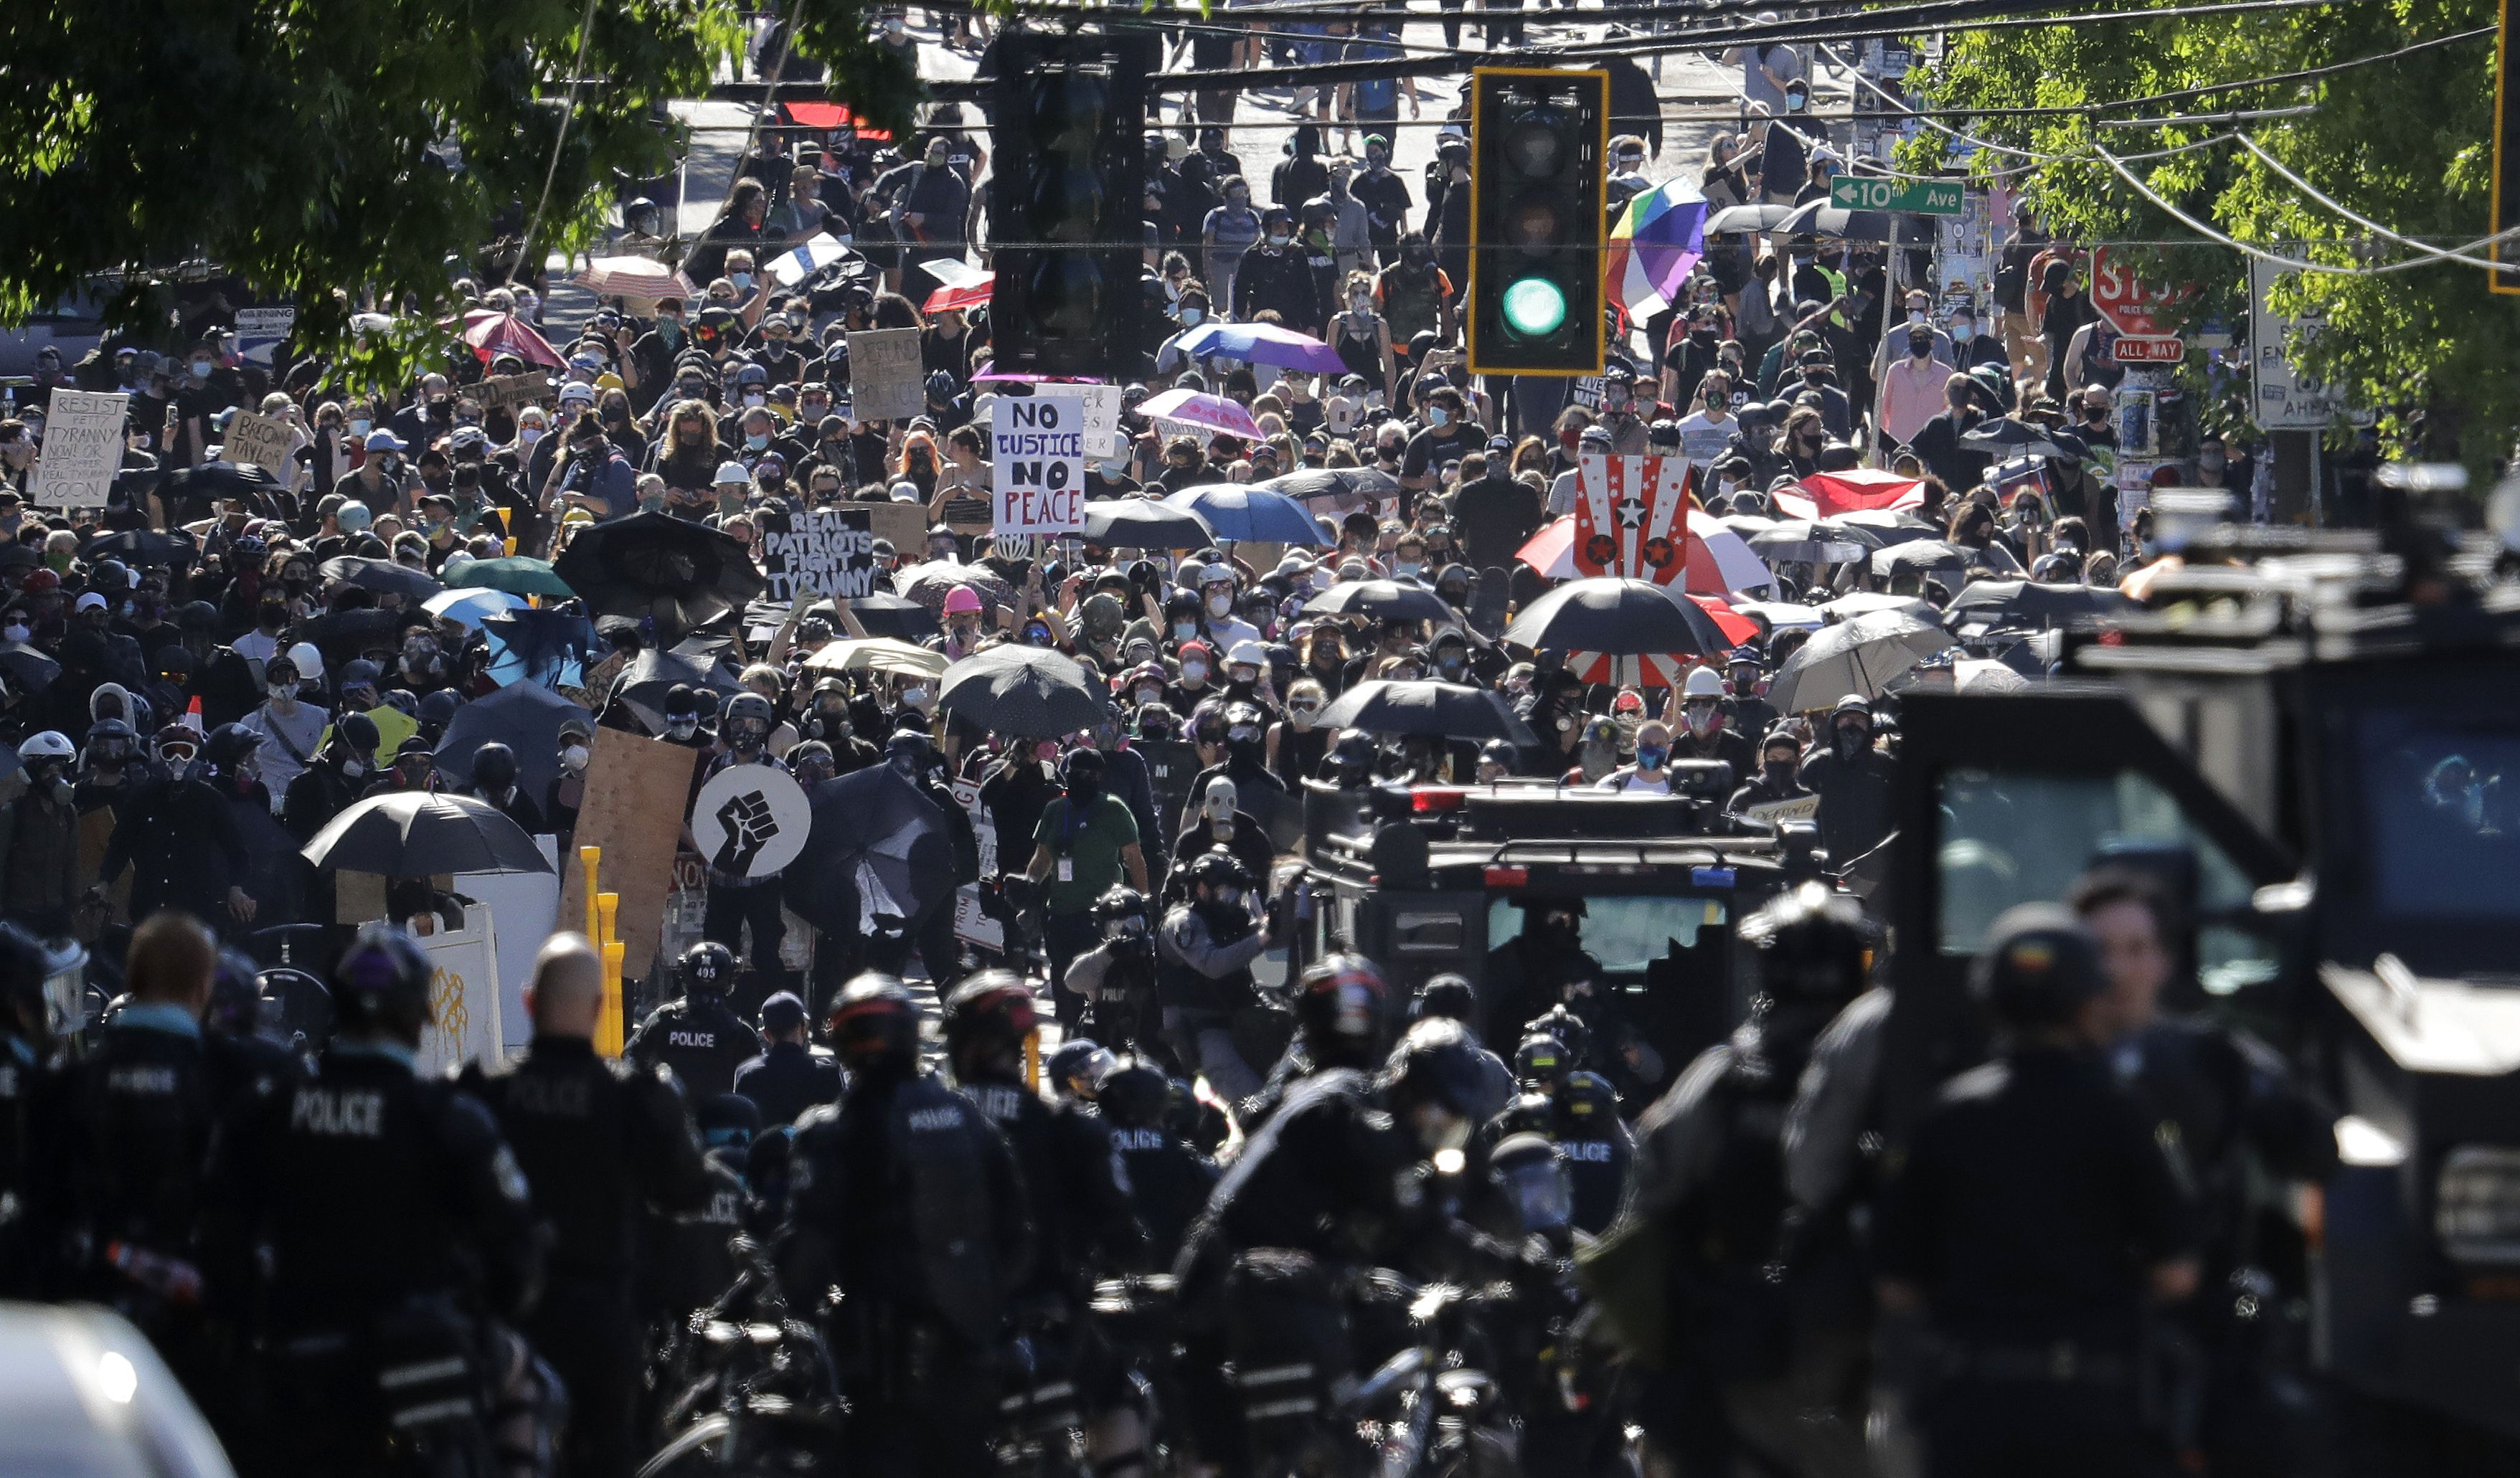 Police clash with protesters Saturday, July 25, 2020, during a Black Lives Matter protest near the Seattle Police East Precinct headquarters in Seattle. A large group of protesters were marching Saturday in Seattle in support of Black Lives Matter and against police brutality and racial injustice. (AP Photo/Ted S. Warren)